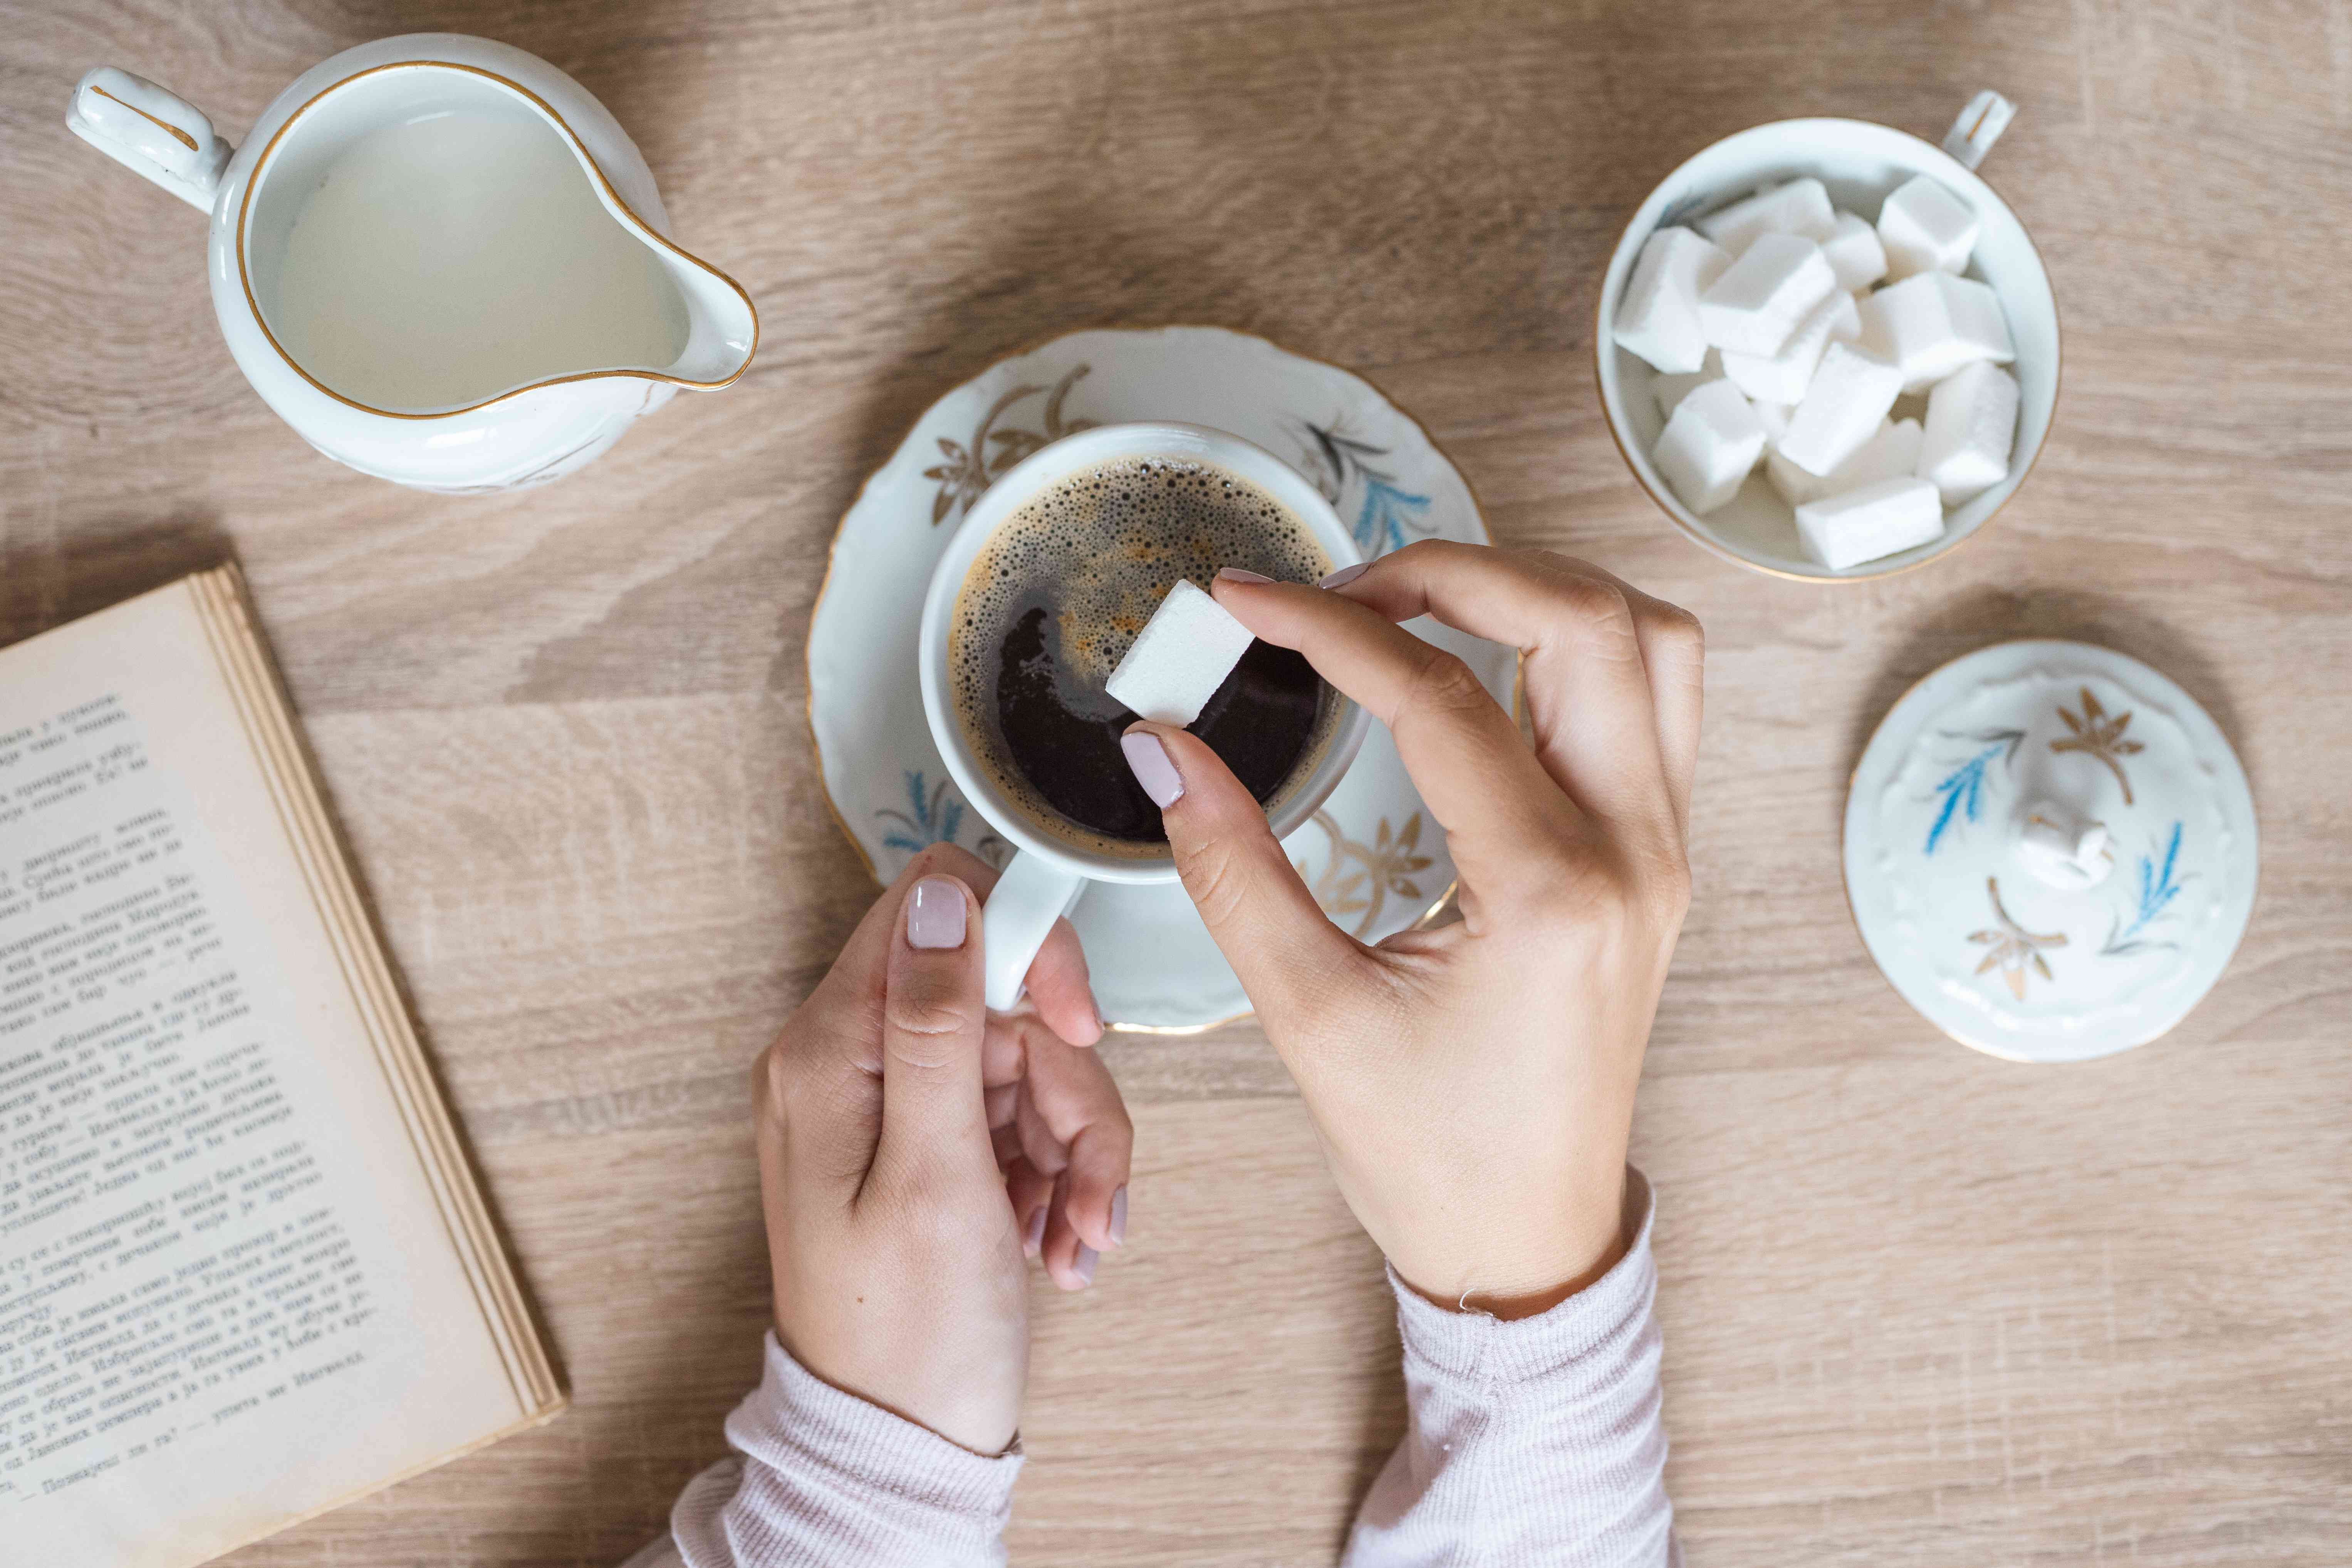 hands place white sugar cube into delicate teacup with cream pitcher on the side